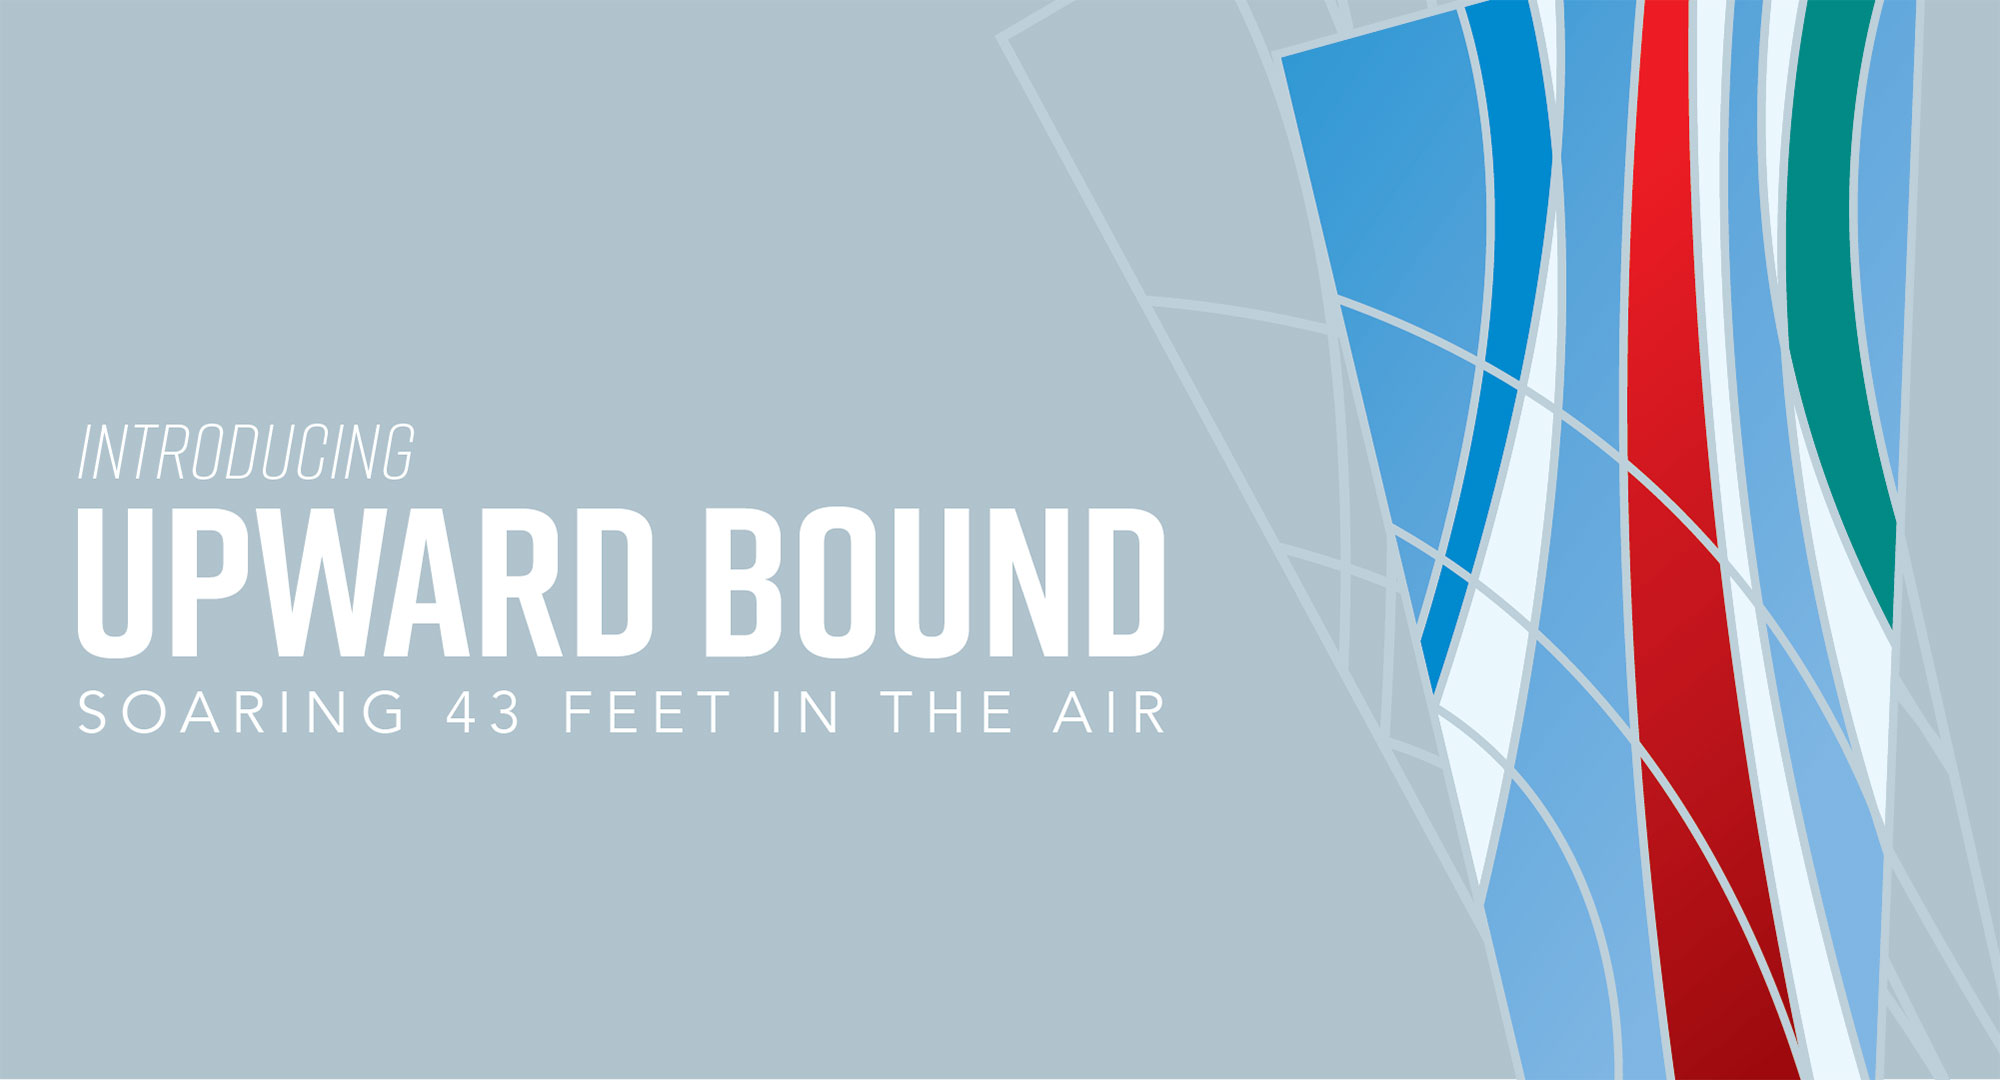 Introducing Upward Bound - Soaring 43 feet in the air